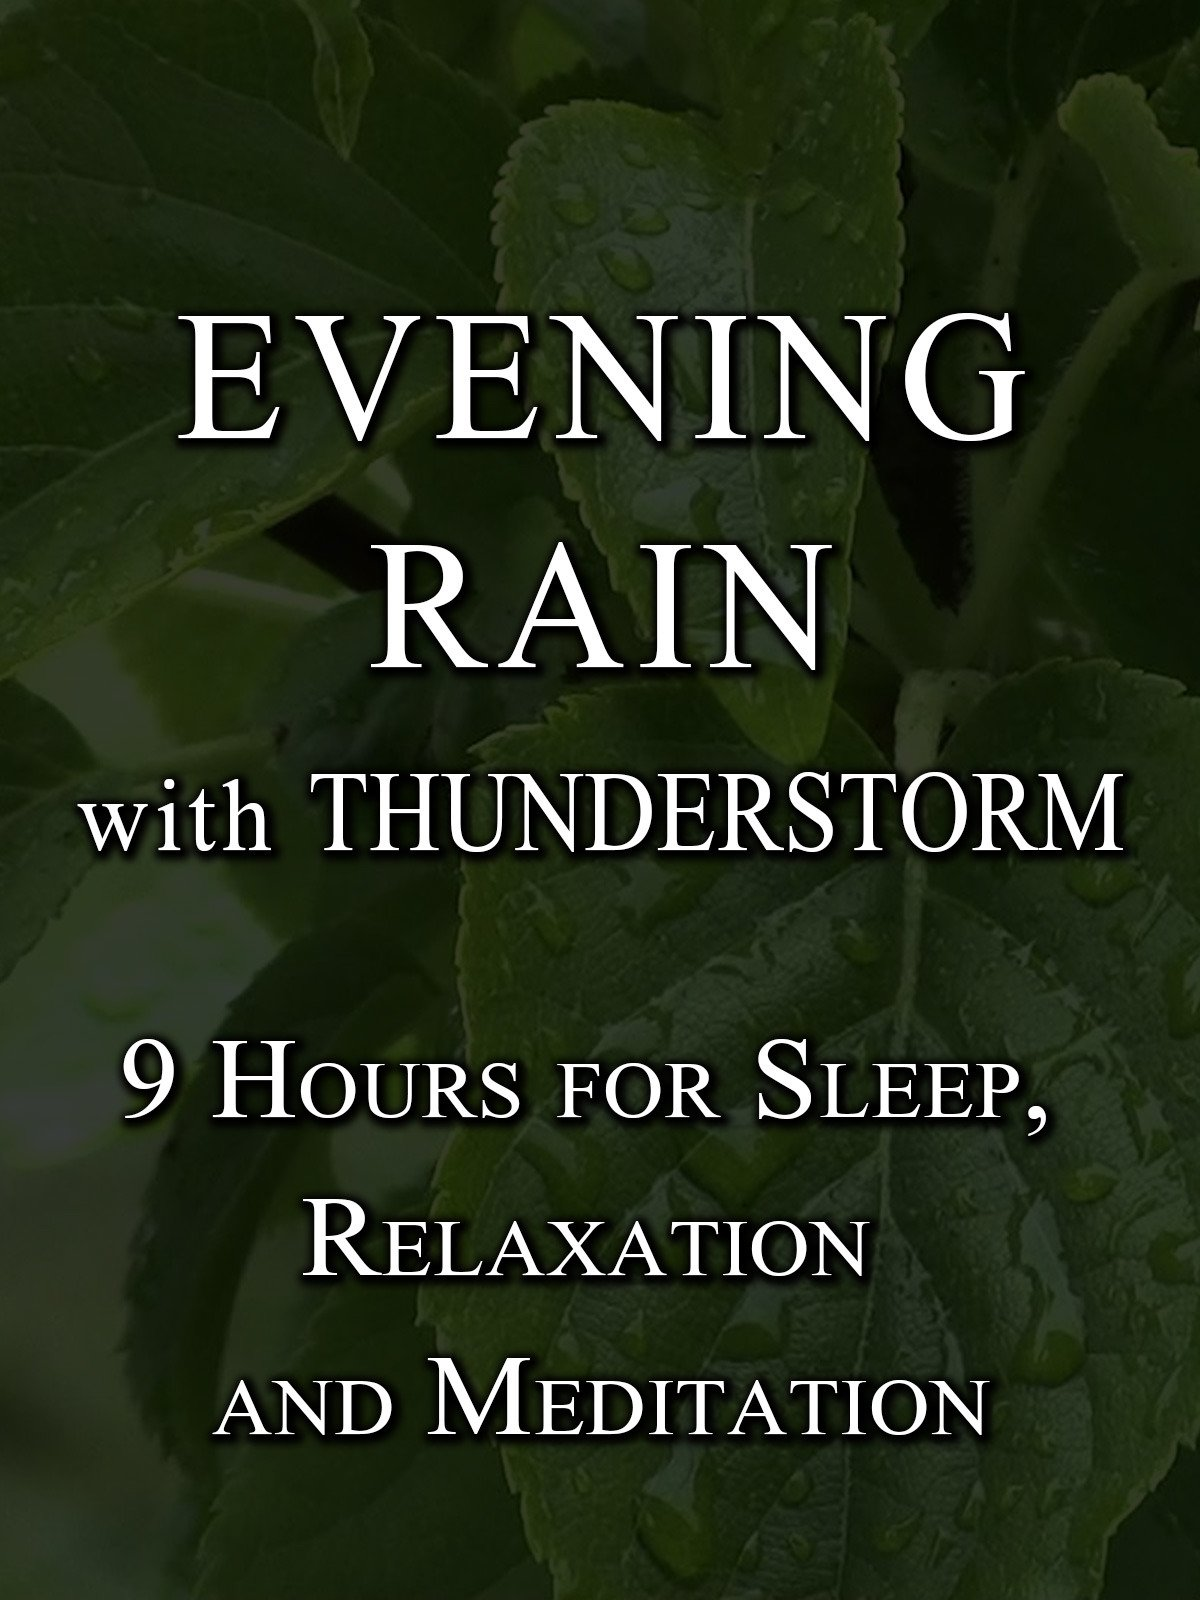 Evening Rain with Thunderstorm, 9 hours for sleep, relaxation and meditation on Amazon Prime Instant Video UK